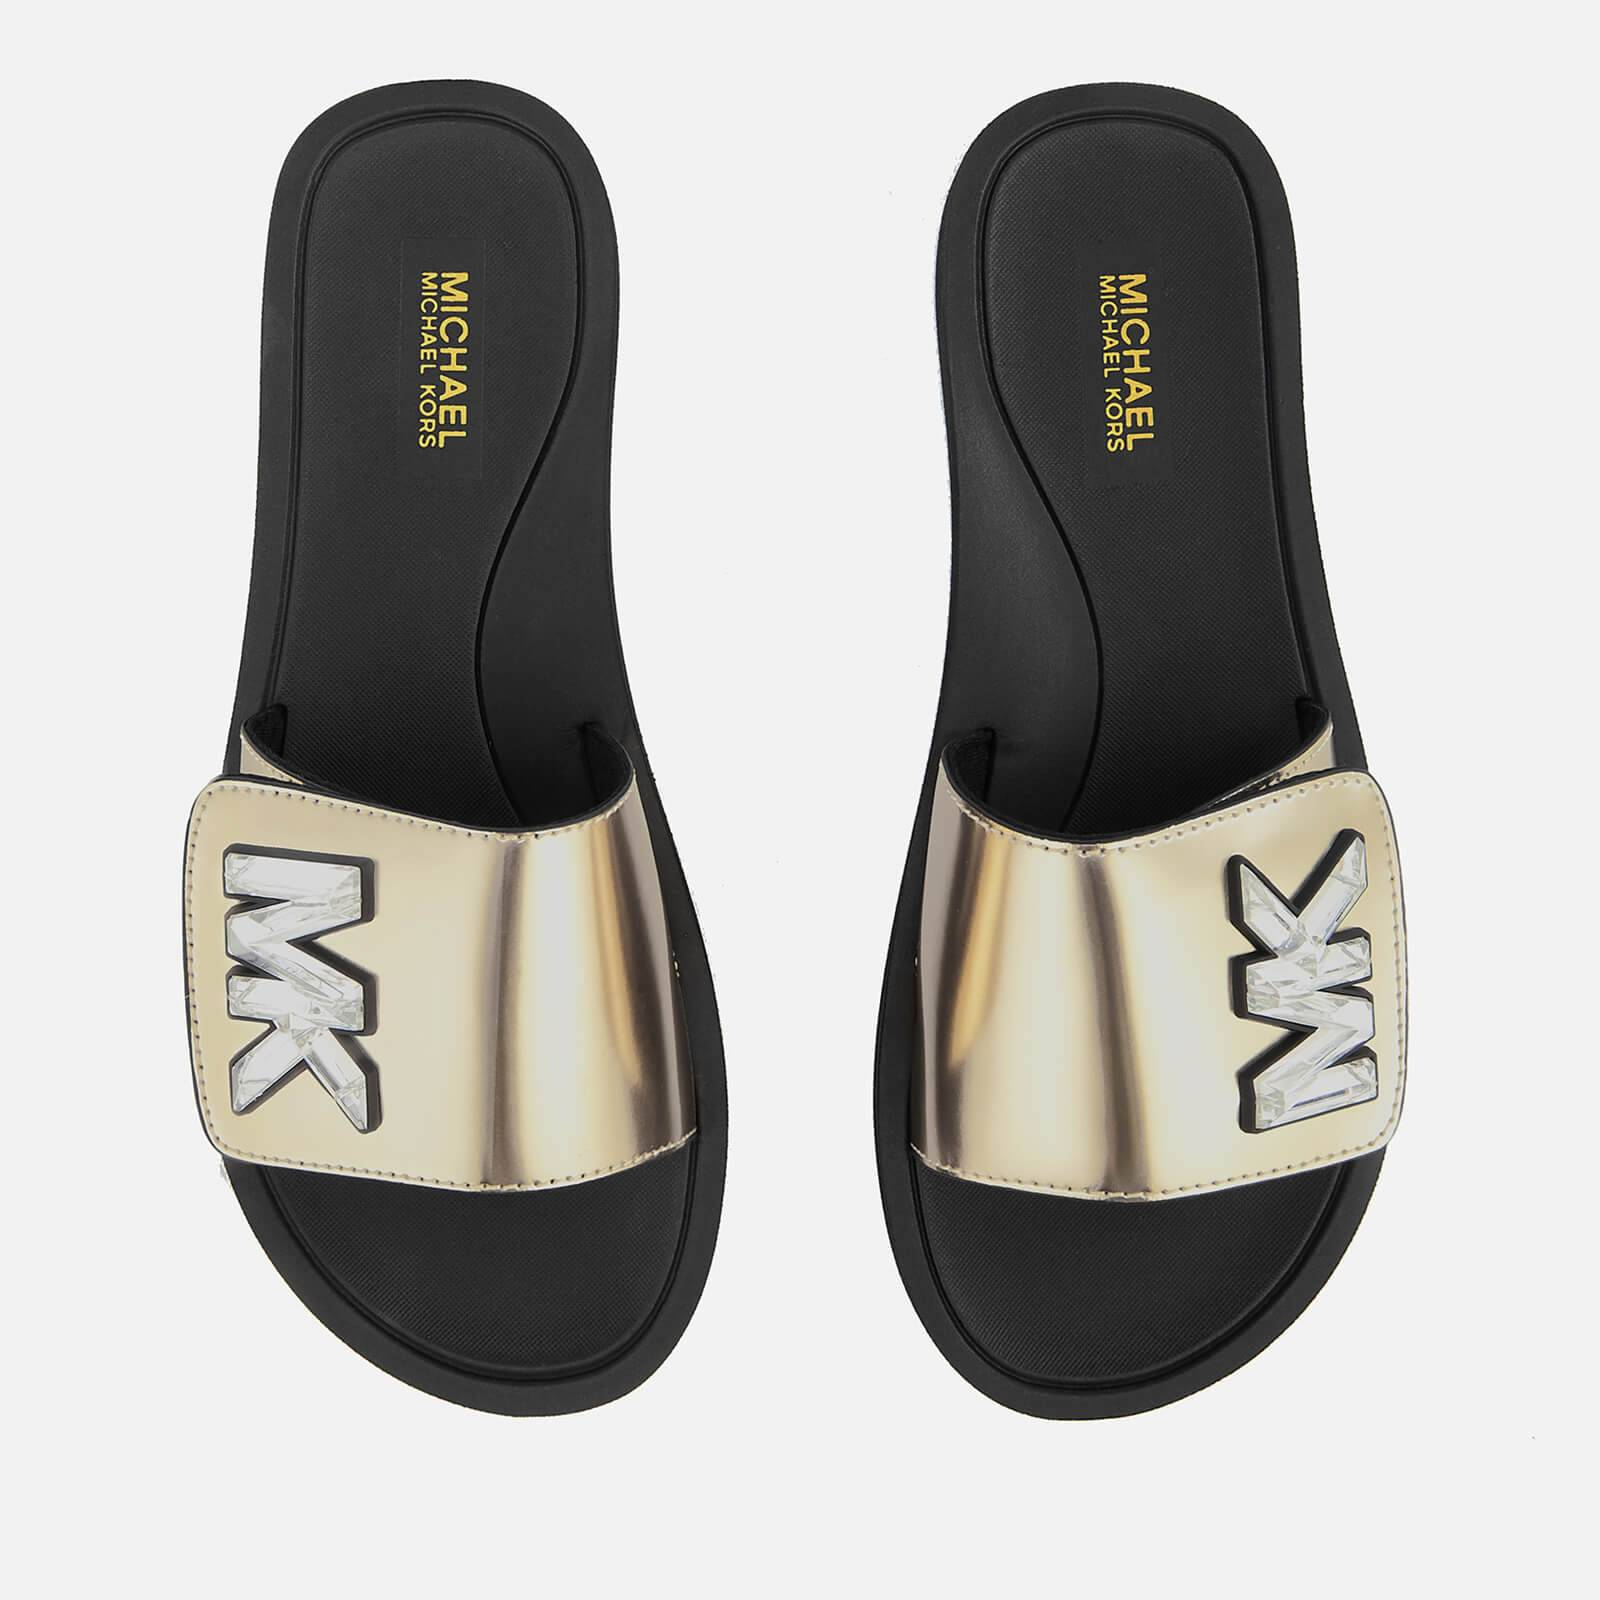 MICHAEL MICHAEL KORS Women's MK Slide Sandals - Pale Gold - UK 3/US 6 - Gold